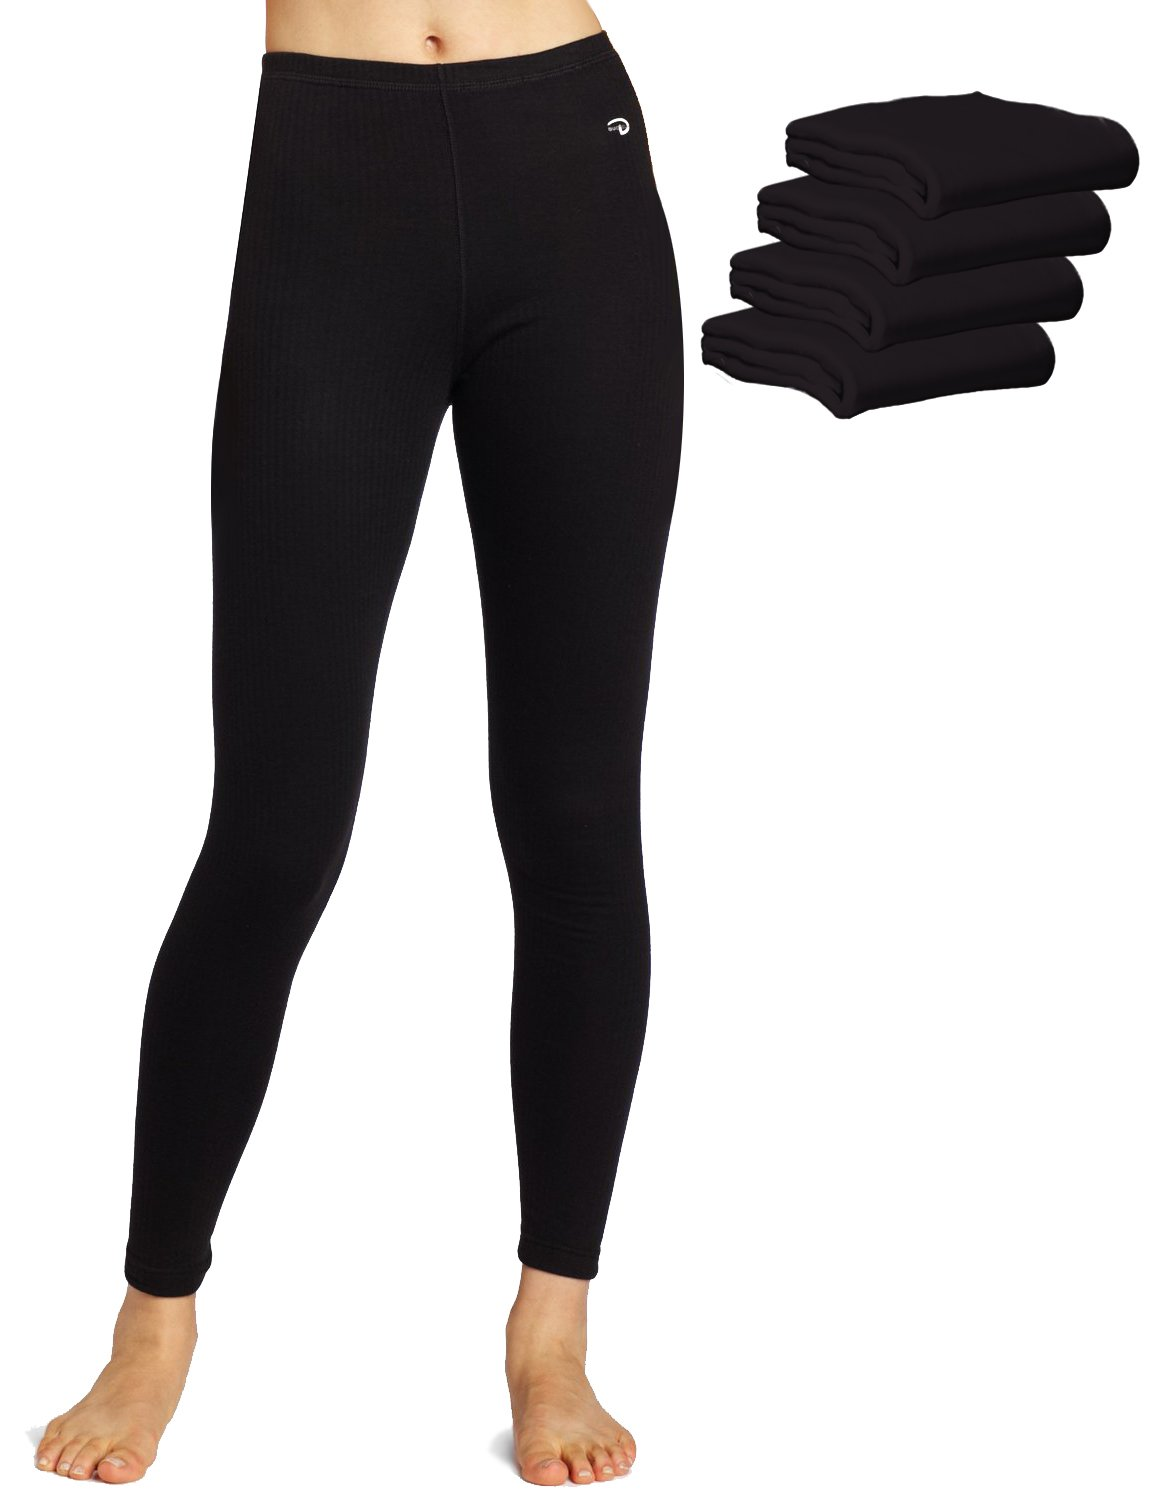 Duofold KMW4 60% Cotton 40% Polyester Women's Mid Weight Wicking Thermal Leggings Large Black - 5 Pack